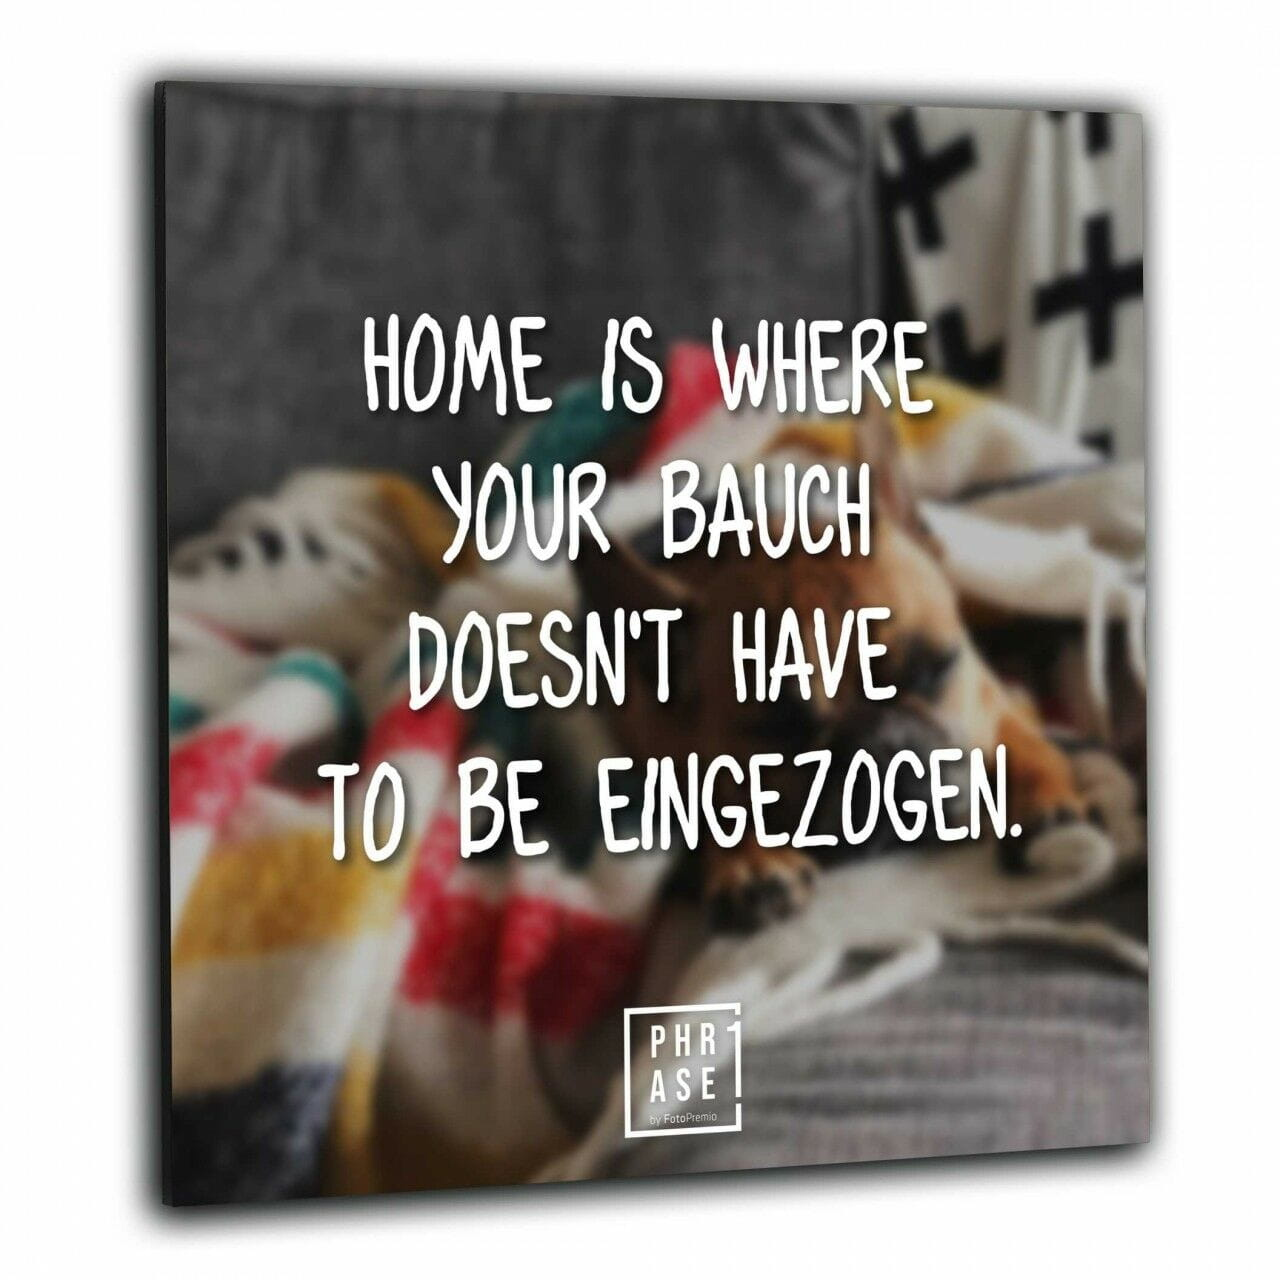 Home Is Where Your Bauch